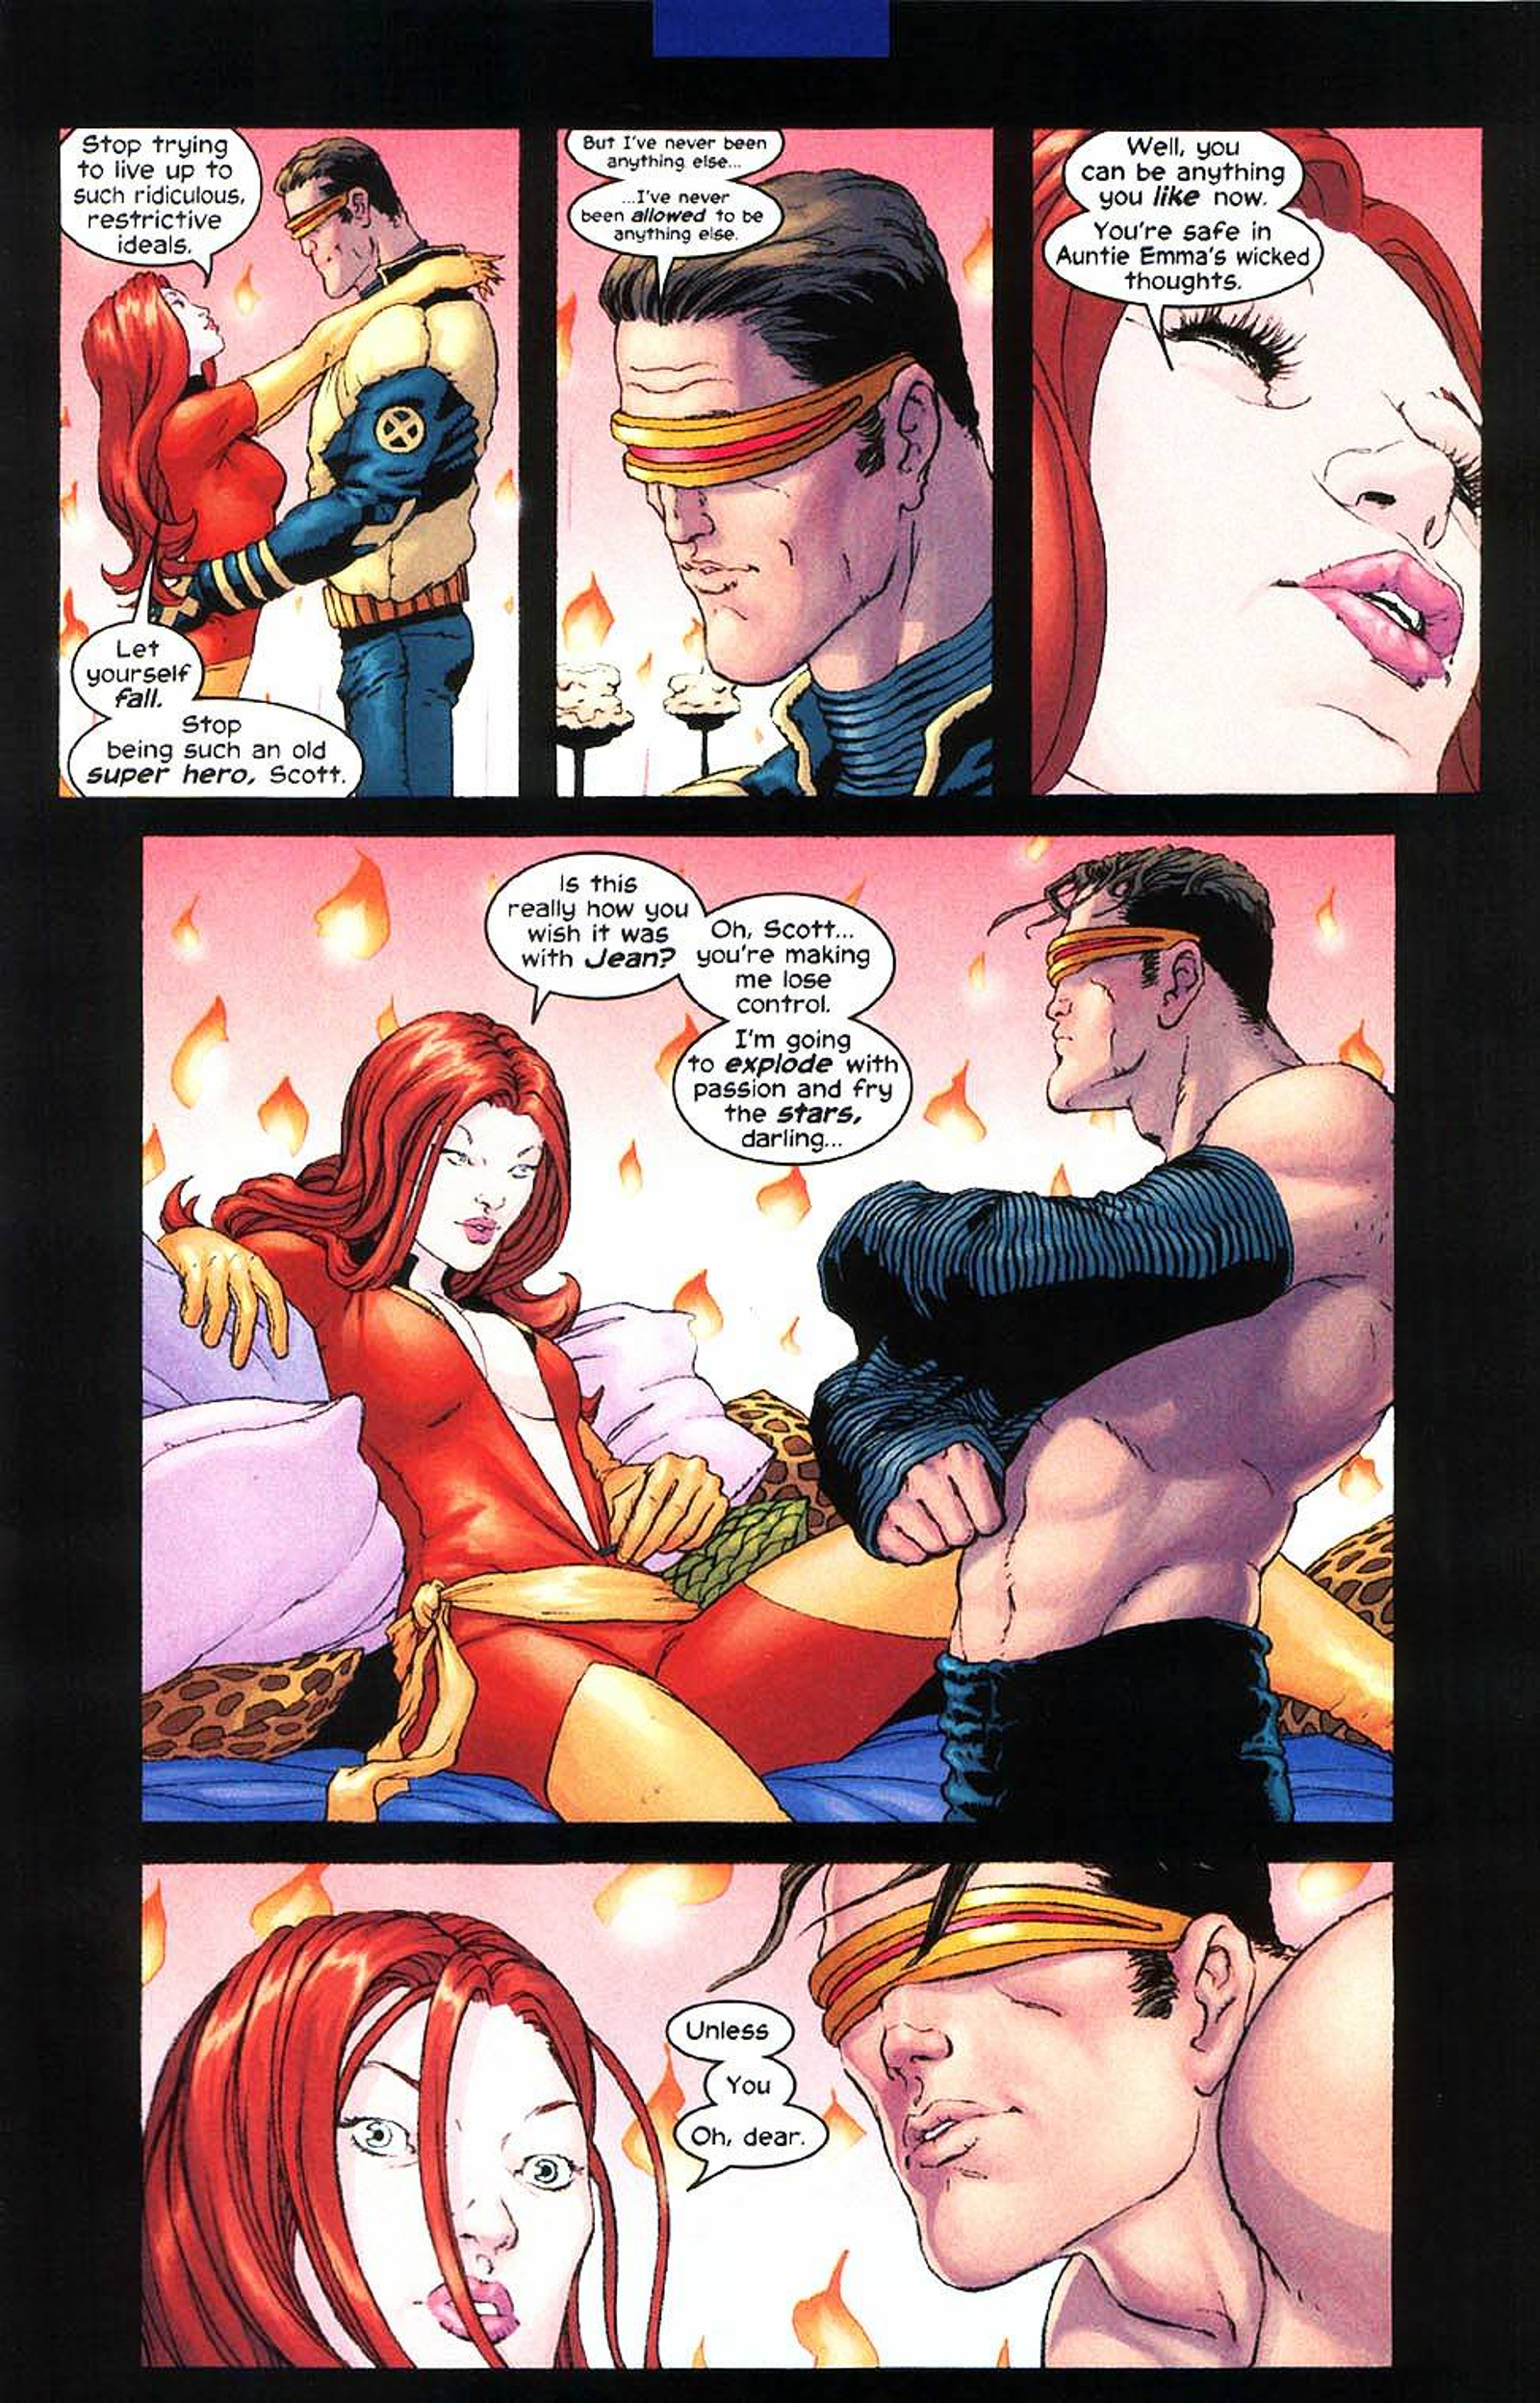 From New X-Men #138 by Grant Morrison, Frank Quitely, Avalon Studio and Chris Chuckry